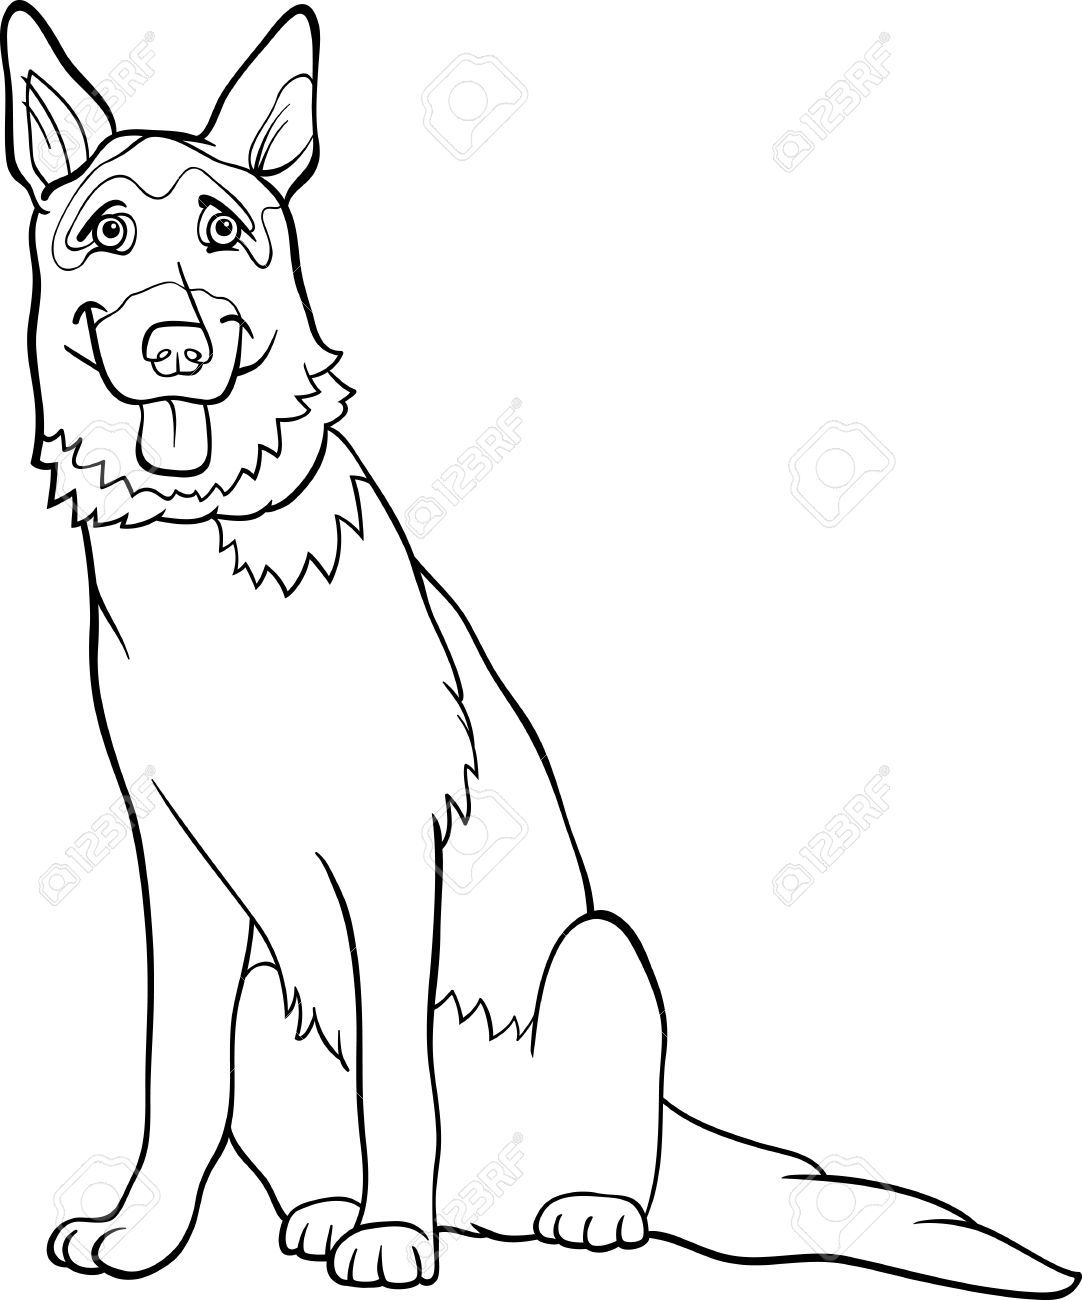 German Shepherd Coloring Pages To Download And Print For Free ...